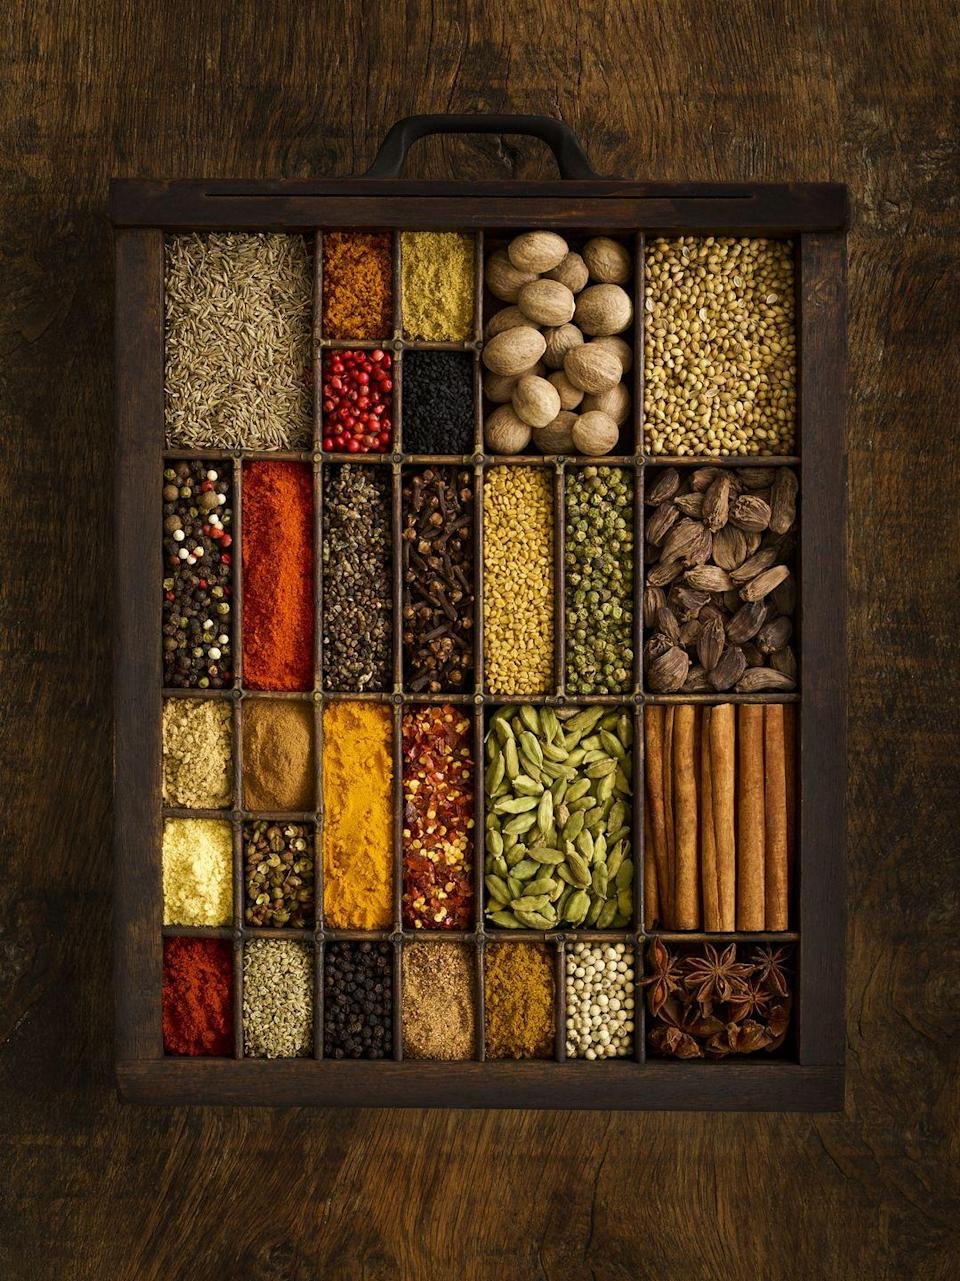 "<p>When it comes to organizing our spices, we all have our preferred methods—but which is best? We asked Chef and Co-Founder of <a href=""https://www.theculinistas.com/"" rel=""nofollow noopener"" target=""_blank"" data-ylk=""slk:The Culinistas"" class=""link rapid-noclick-resp"">The Culinistas</a> Jill Donenfeld. Aspiring Barefoot Contessas, listen up!</p><p> ""I like everything put away so no spice rack for me, but I do label each jar on the top and the side of it and prefer to store them in a pull-out drawer rather than a shelf where the guys in the back could be forgotten,"" Donenfeld says. ""When I want the sumac (often), it's always just there.""</p><p>Thinking through your most commonly used spices, and grouping them together in a thoughtful way, will ensure they are easily accessible and will help you remember which ones need to be added to your next grocery list. </p>"